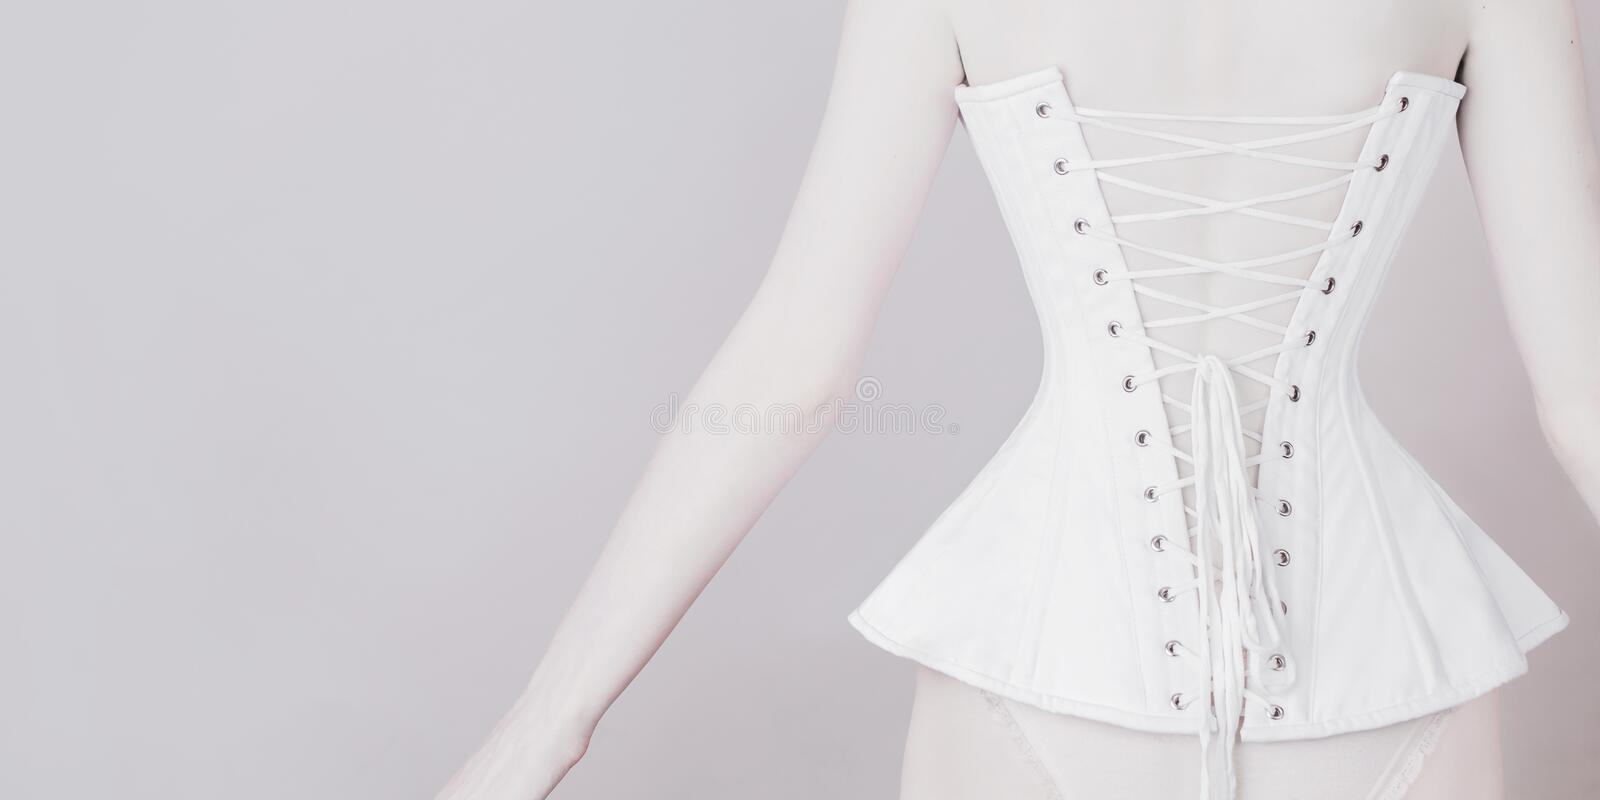 Seductive outfit. Slender girl in waist pulling corset on light background. Sexual bdsm lingerie. Lady in narrow laced corset stock photo